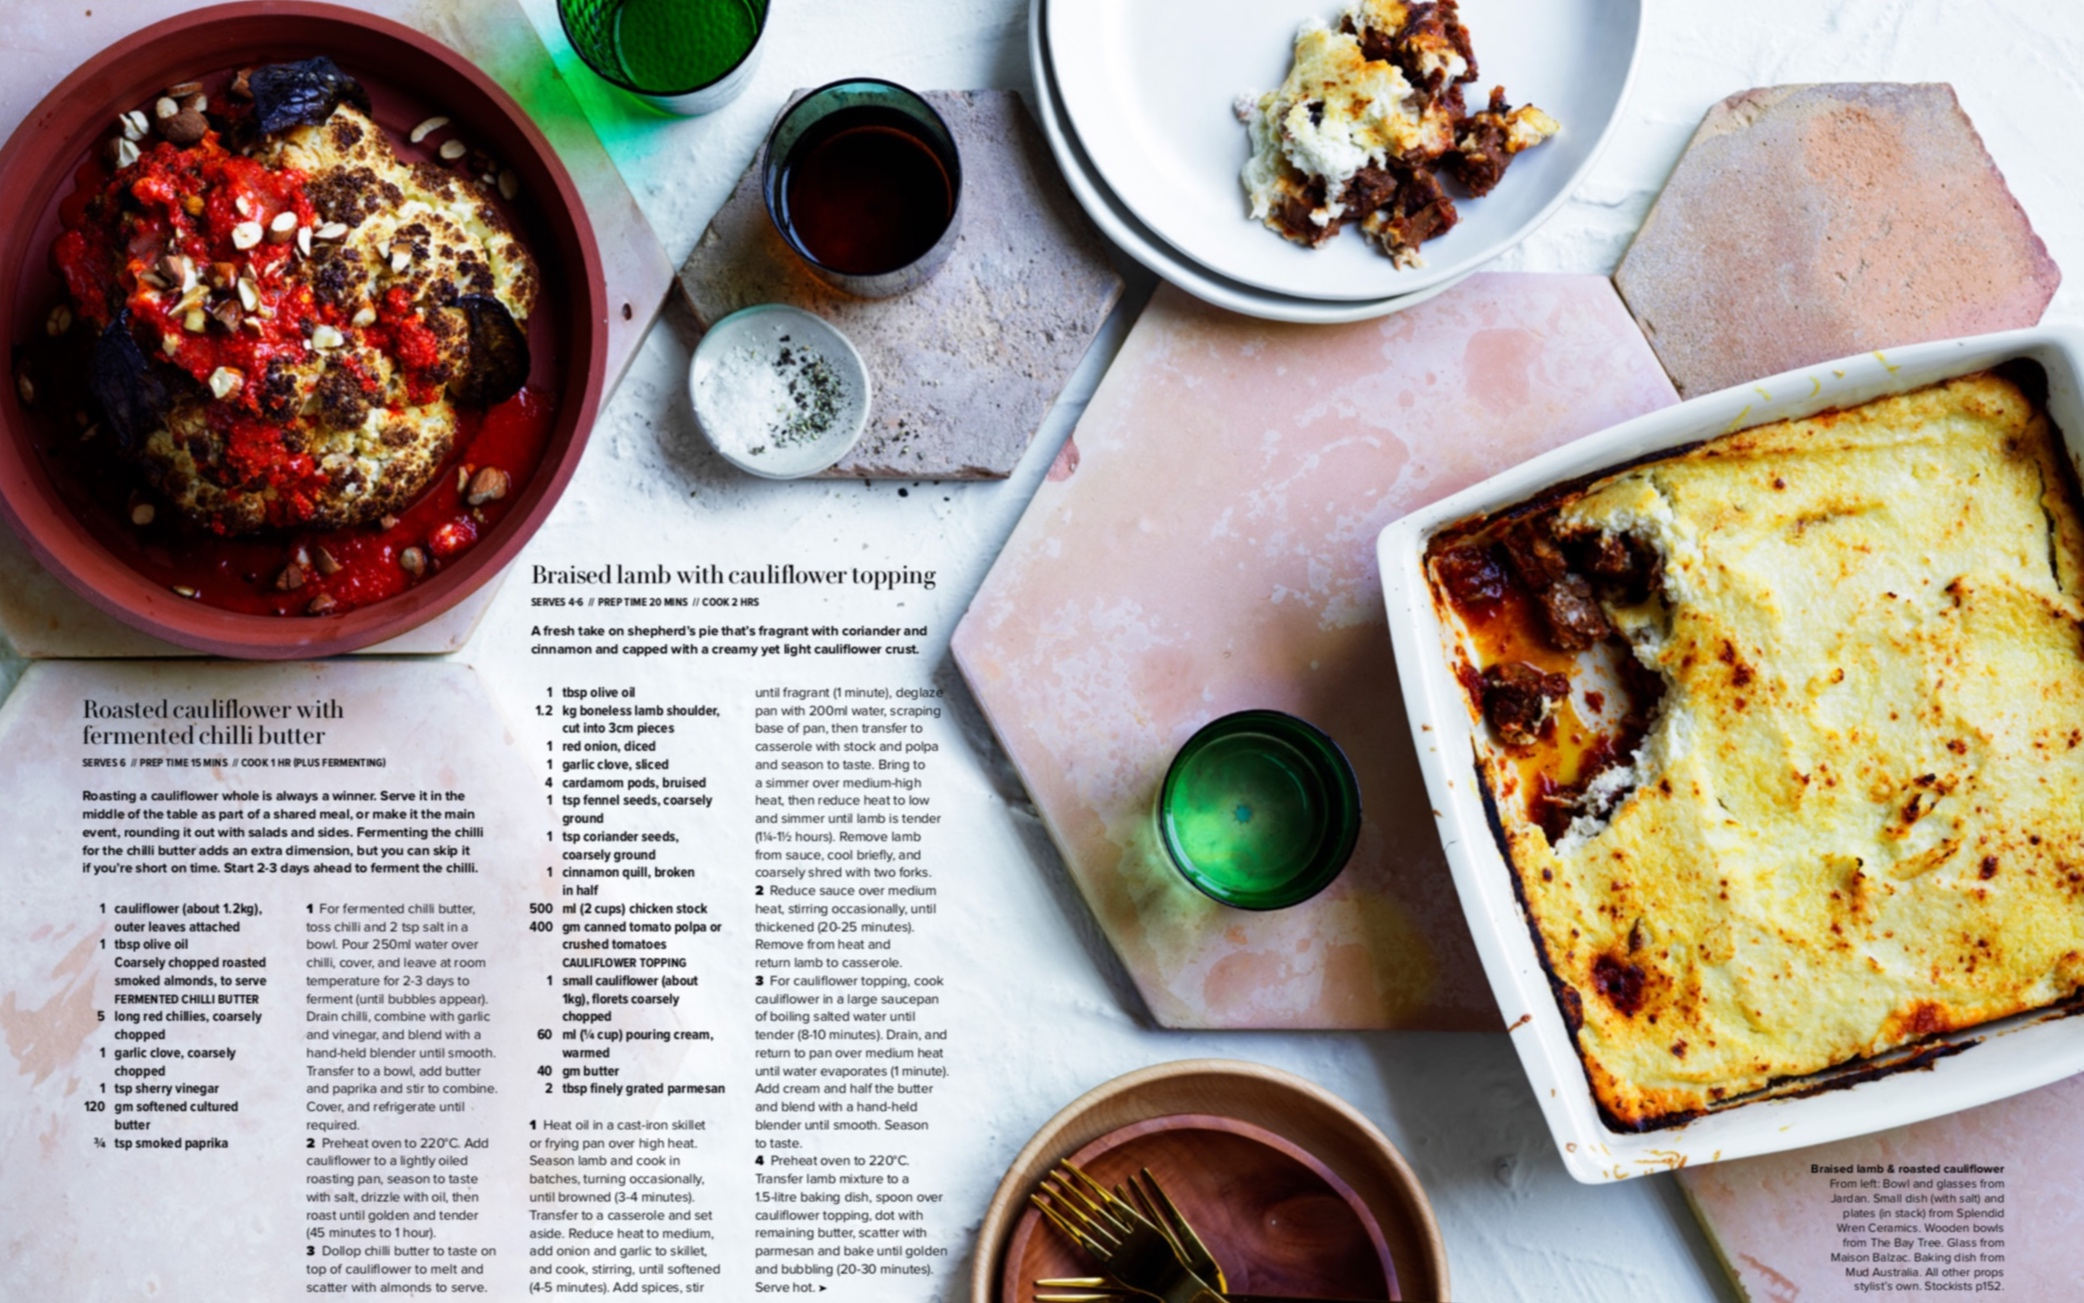 GOURMET TRAVELLER APRIL 2019 - This hearty looking spread in the April 2019 issue of Gourmet Traveller features two dinner plates and a salt dish made by me (top, centre). I can already tell that this is going to be the winter of the cauliflower for me!